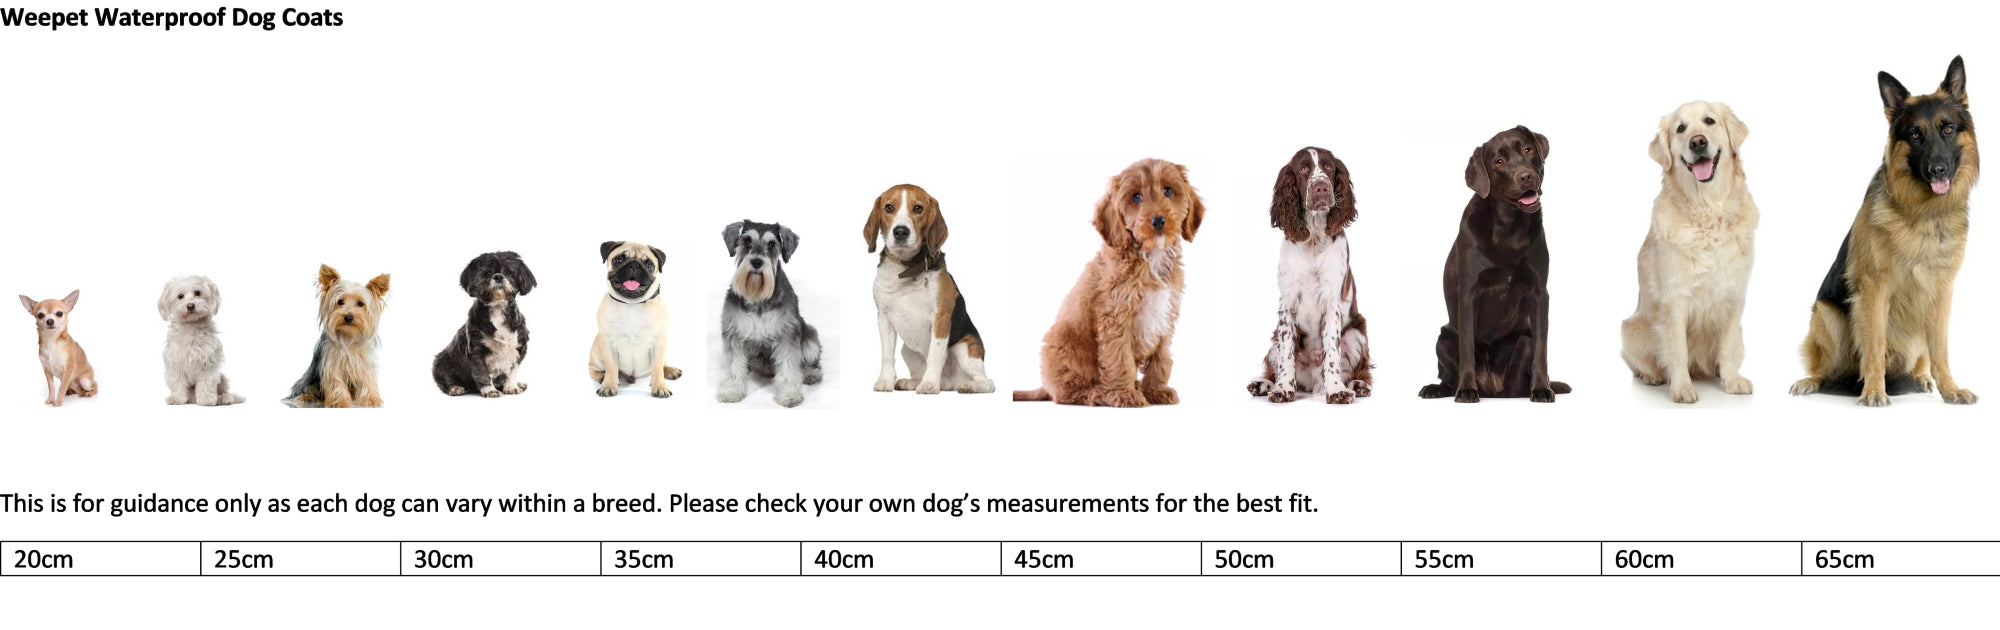 Waterproof dog coat by dog breed sizing